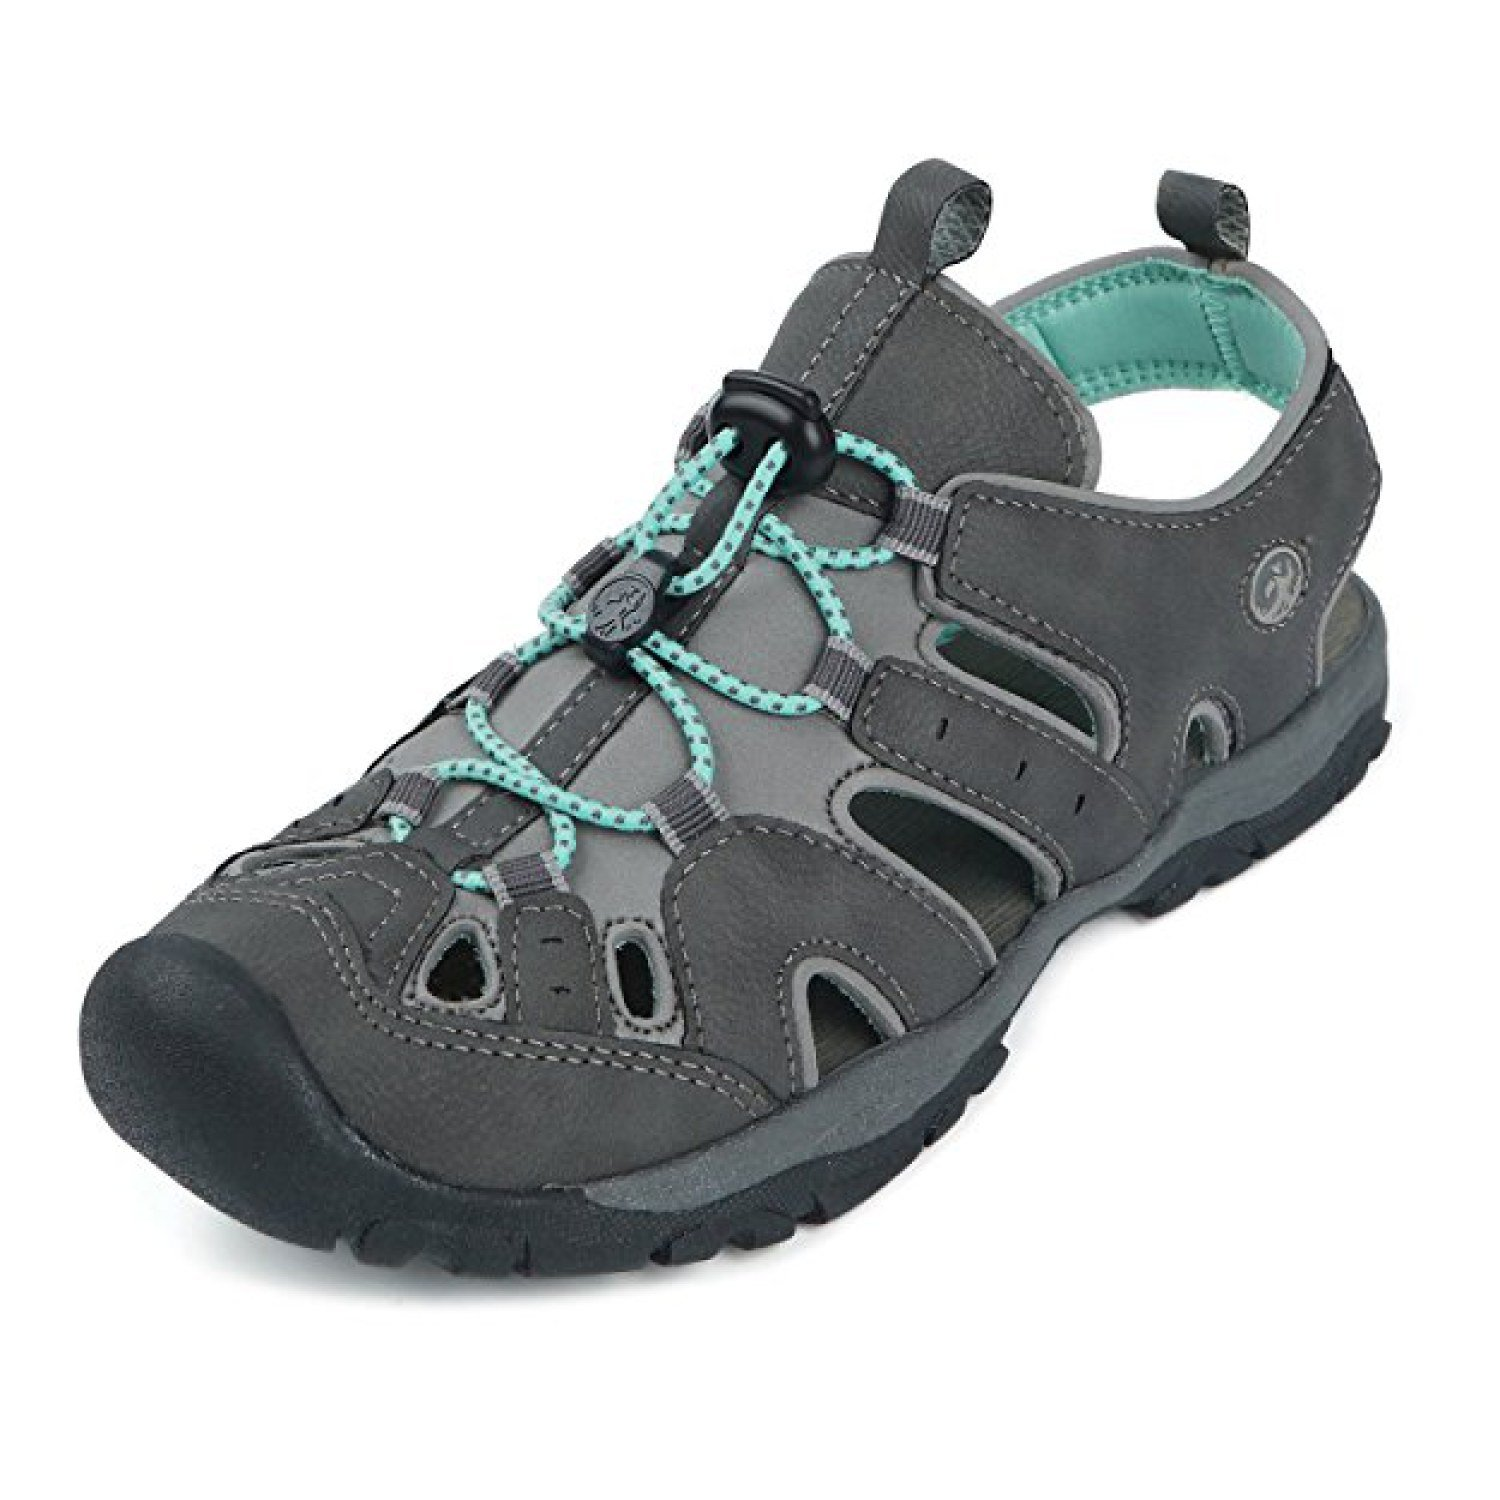 Northside Women's Burke II Athletic Summer Sandal, Dk Gray/Aqua, 6 B(M) US; with a Waterproof Wet Dry Bag